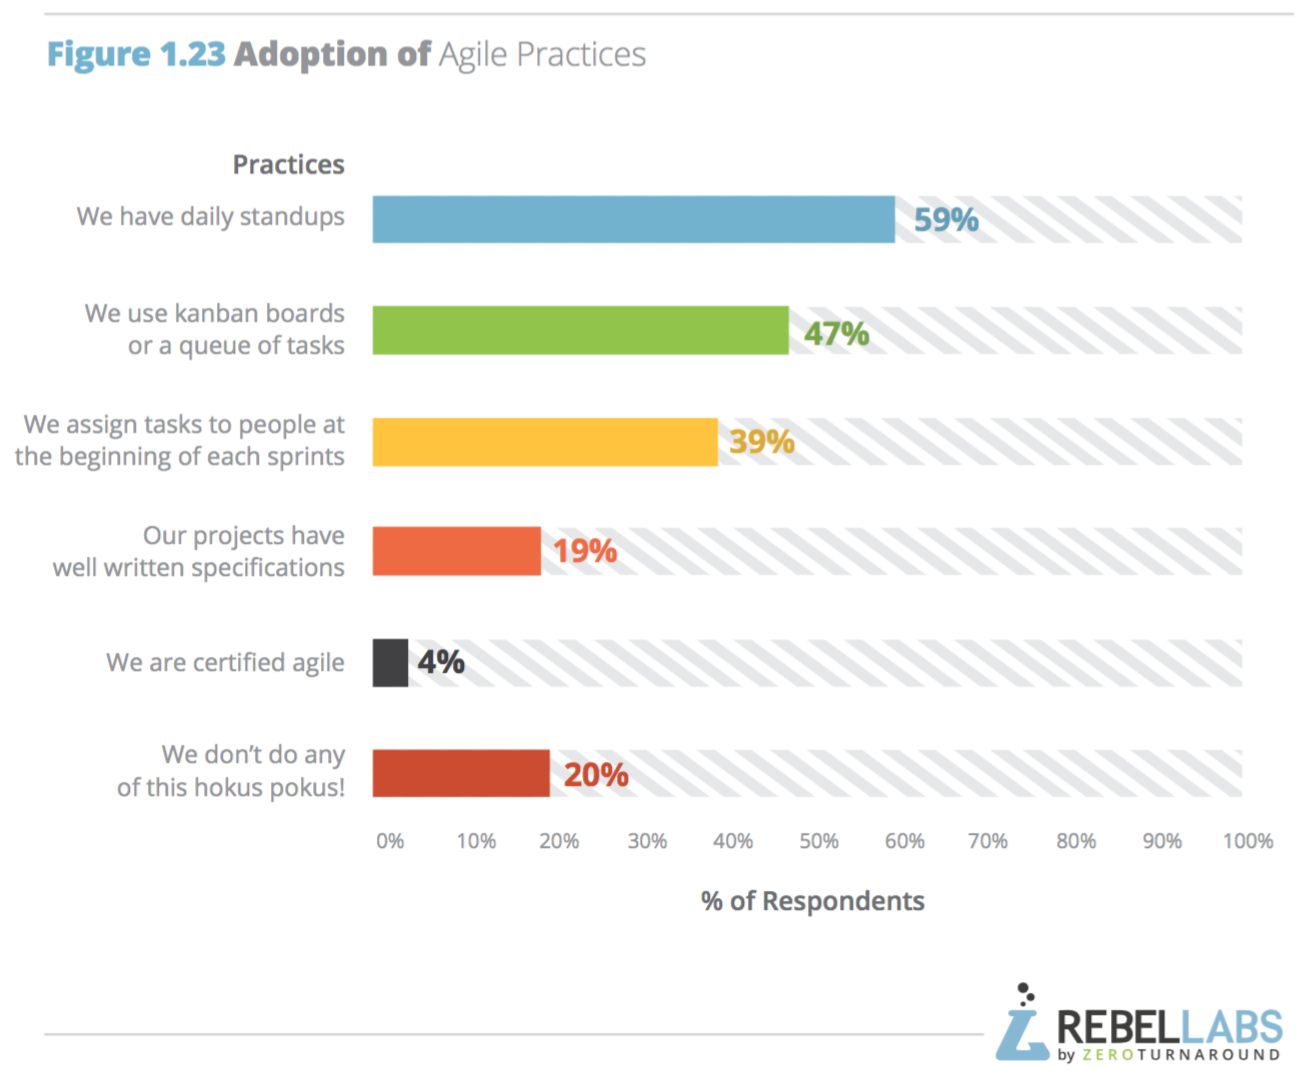 bar chart showing adoption of various agile practices